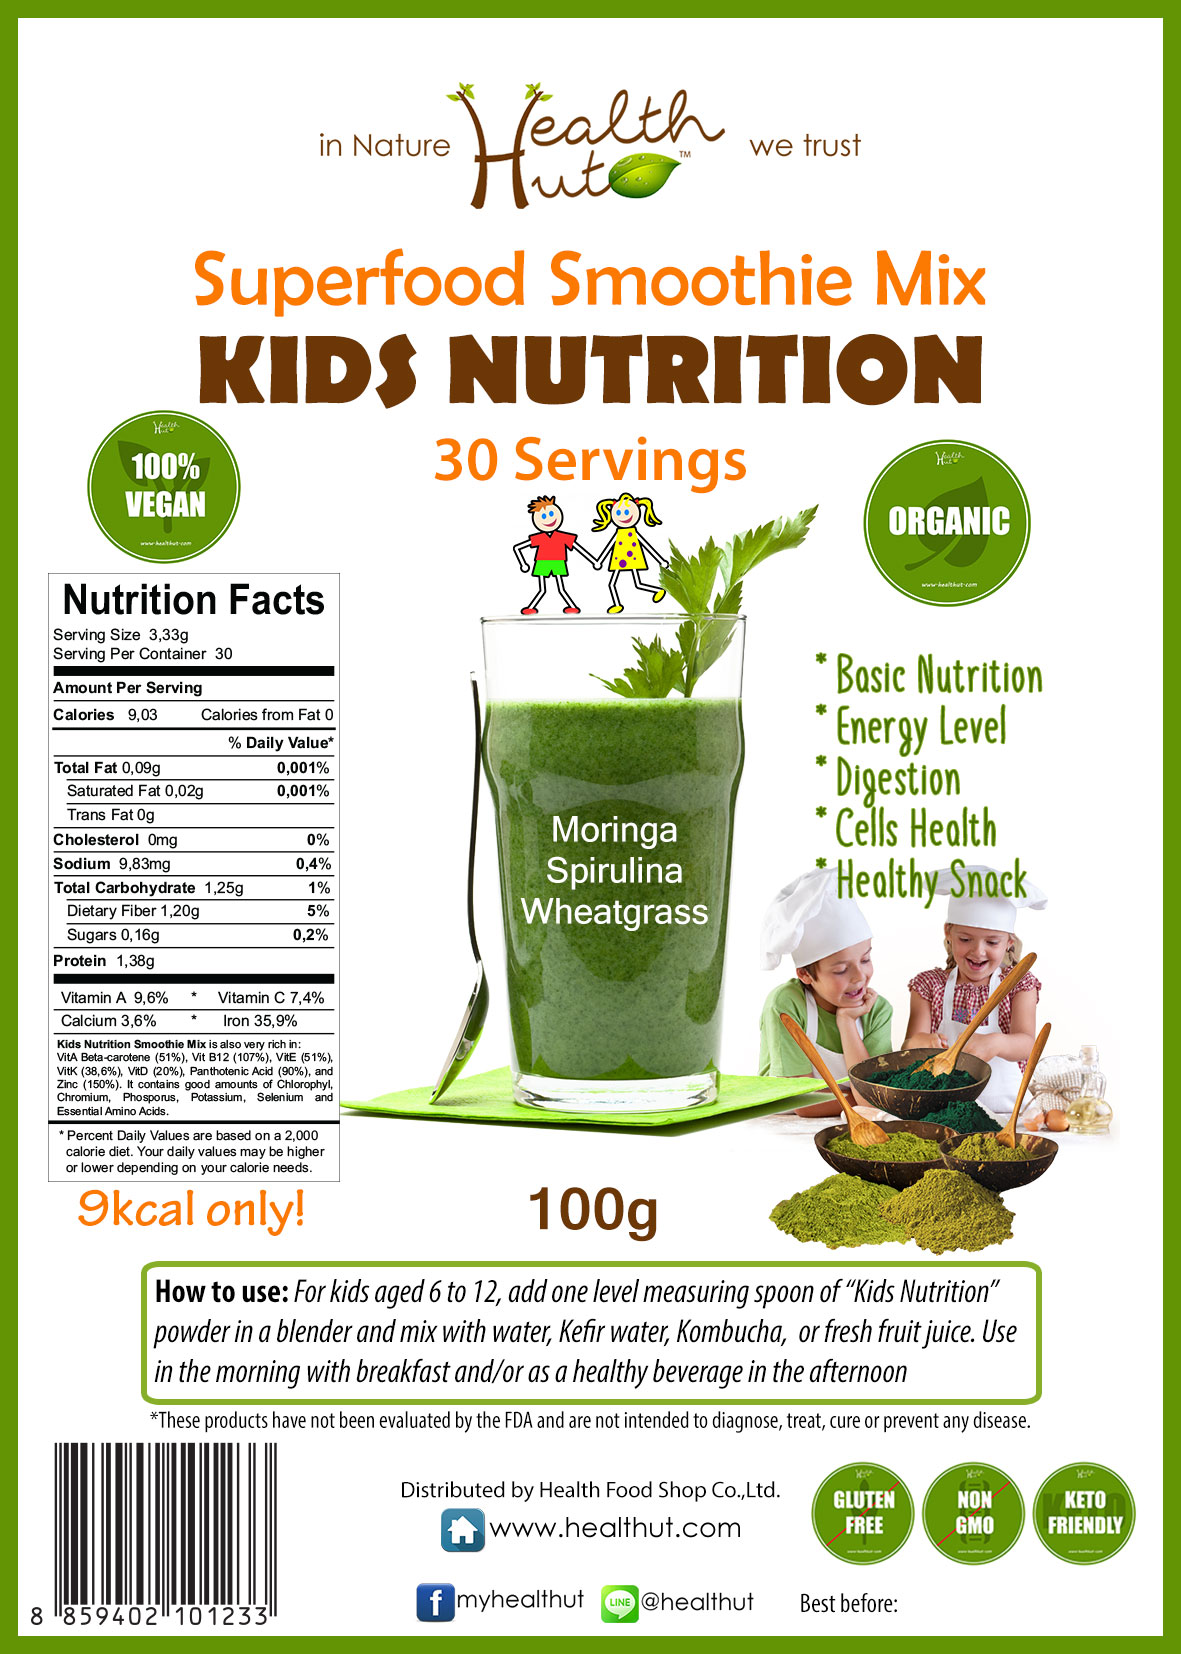 Superfood Mix - Kids Nutrition